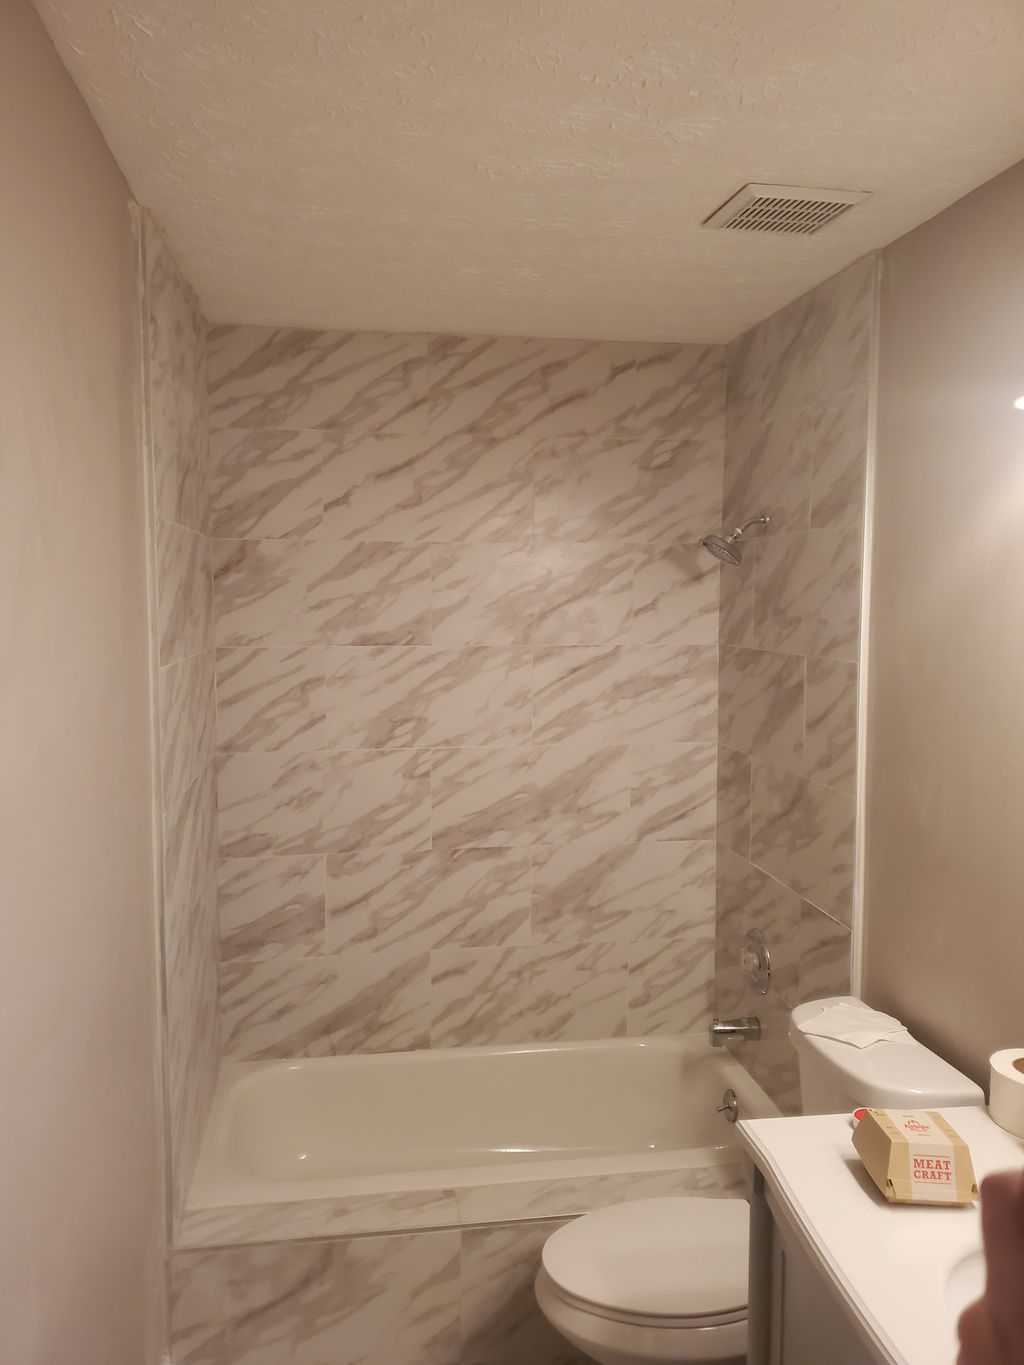 Bathroom tile installation with added customize front piece